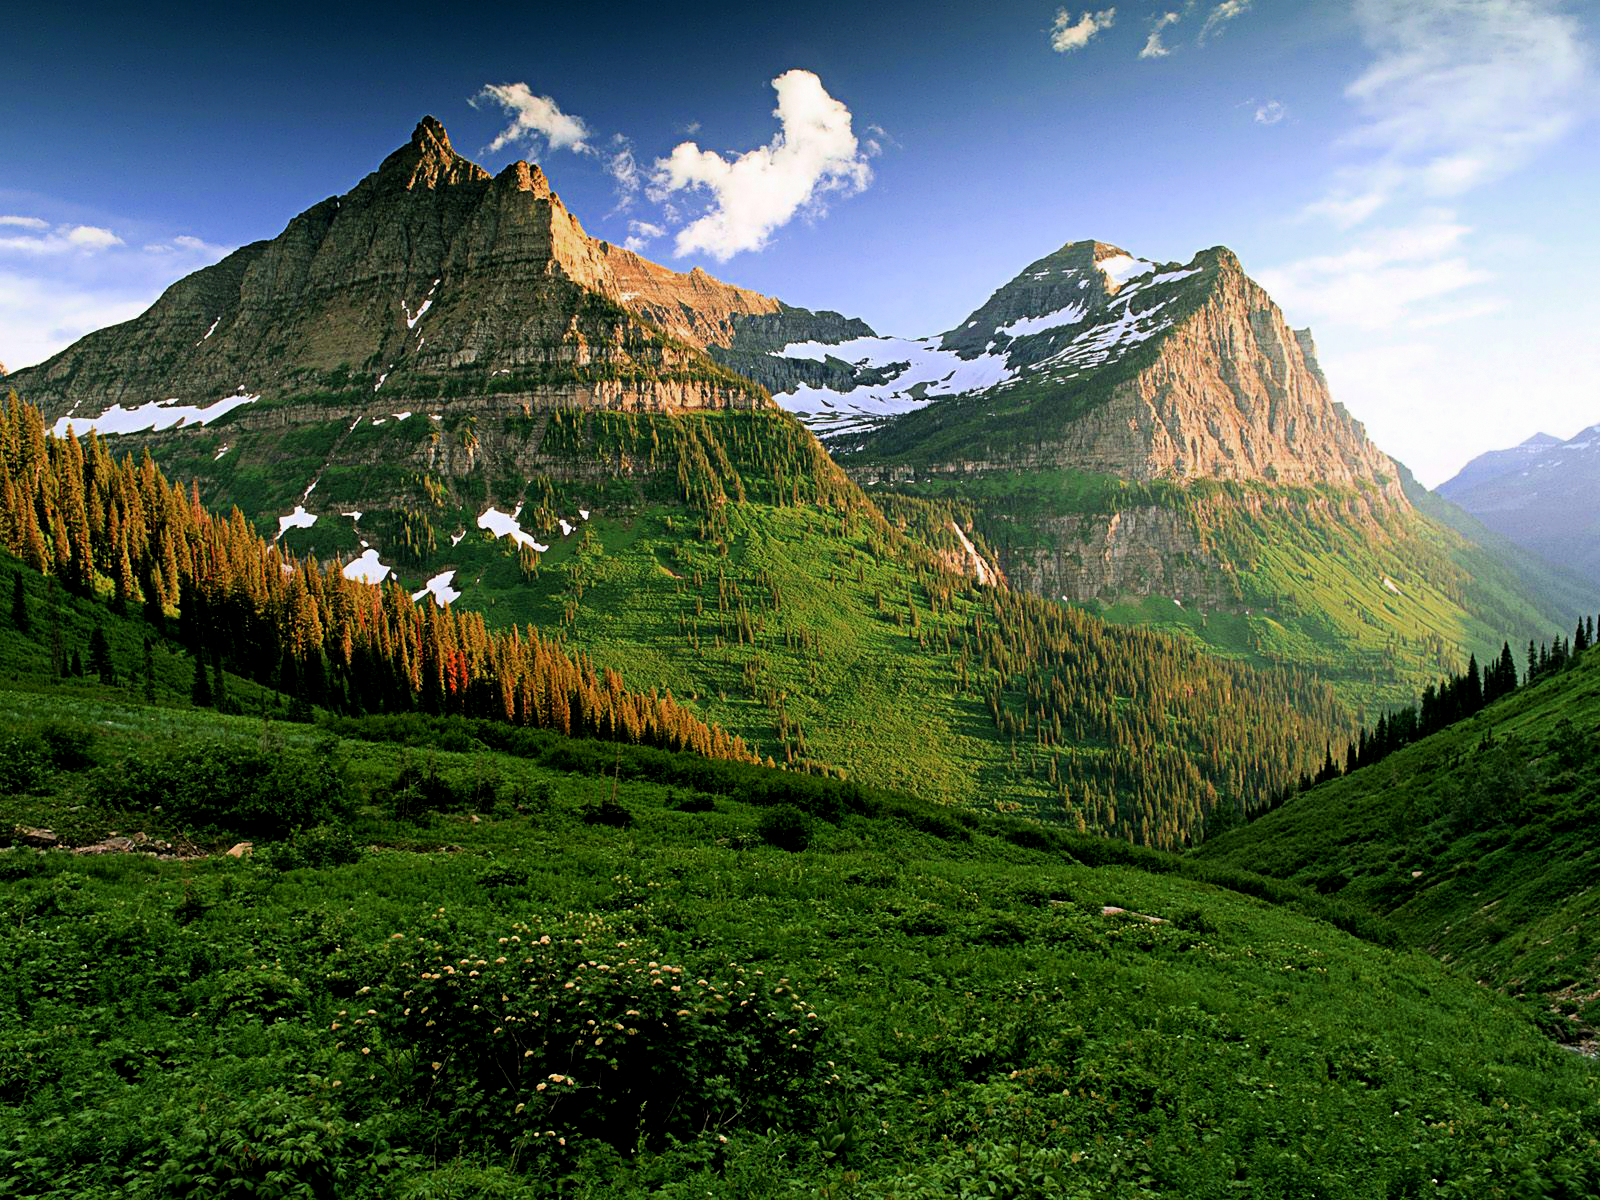 Pin Hd Glacier National Park Dual Monitor Screensaver Backgrounds on 1600x1200